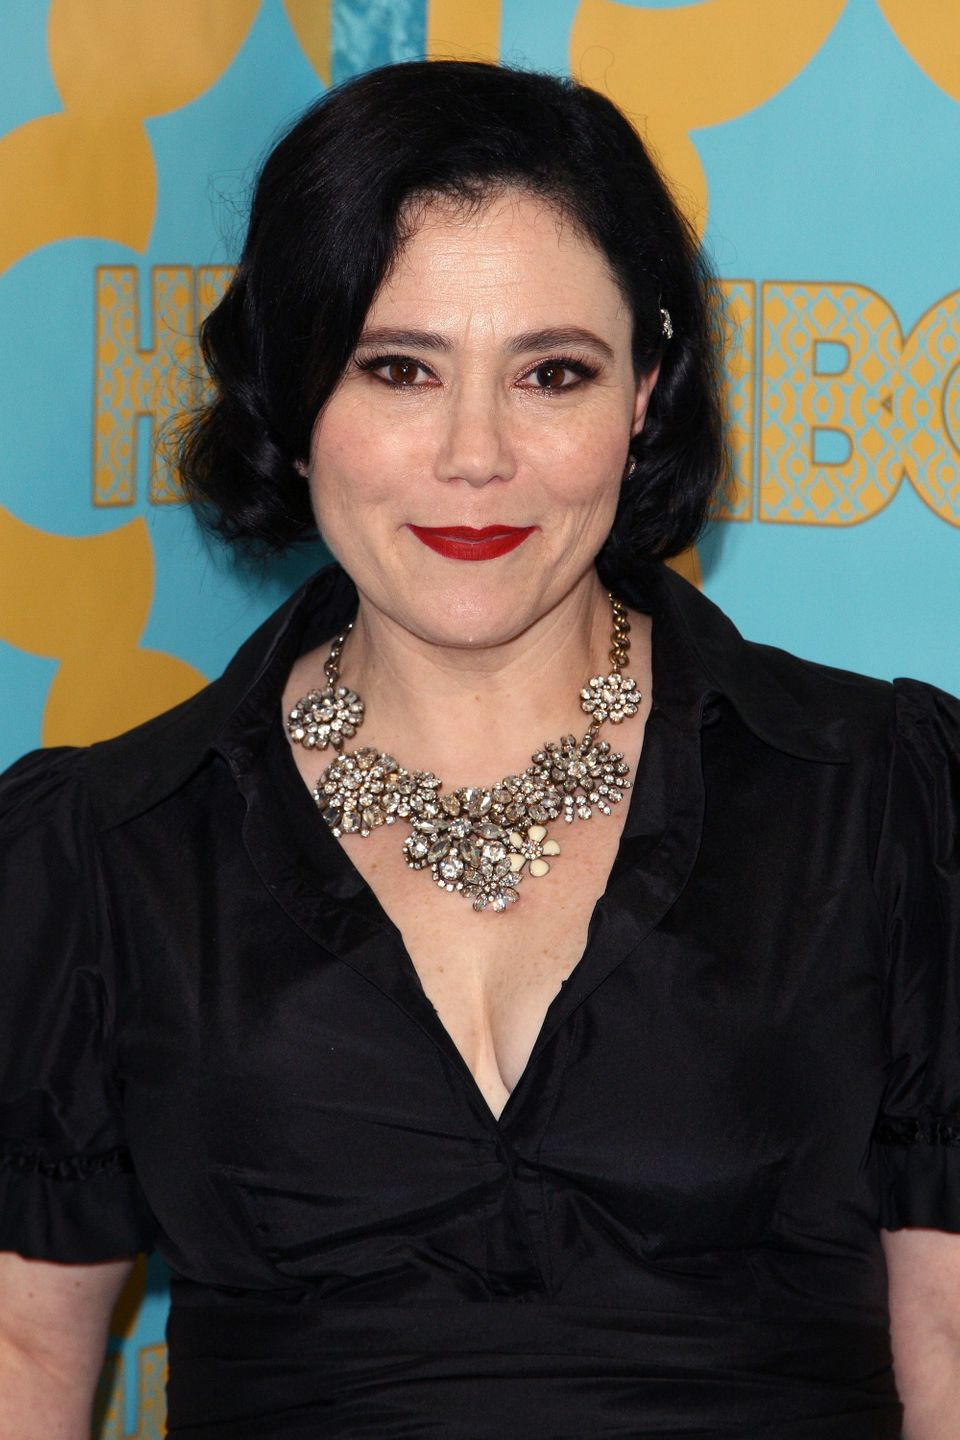 Alex Borstein was first cast to play Sookie St. James, but the character was given to Melissa McCarthy. She then was recast t